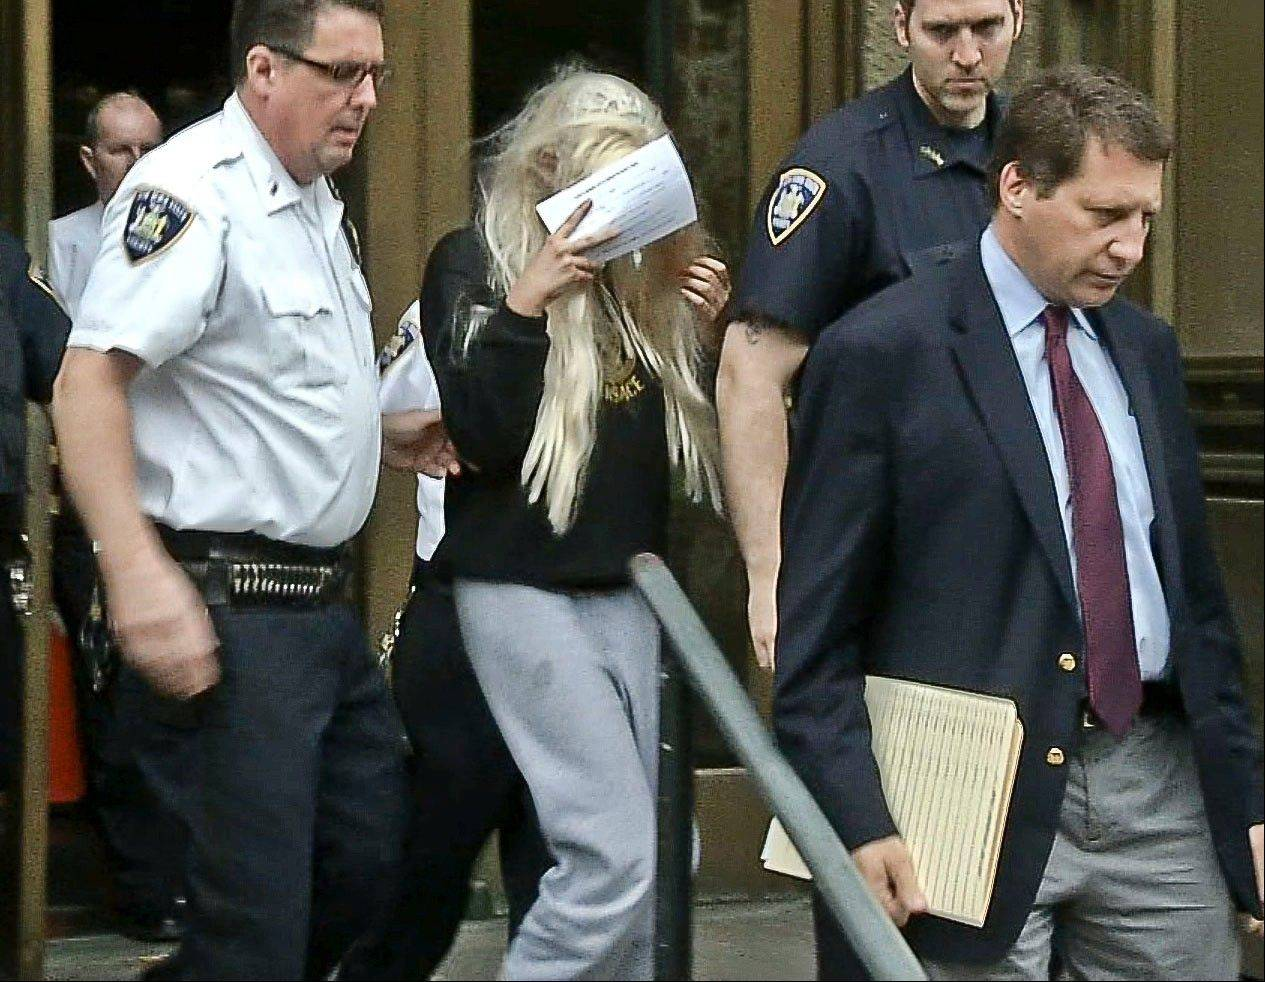 Actress Amanda Bynes, center, wearing sweats and a blonde wig, shields her face as she is escorted after a Manhattan criminal court appearance on Friday in New York.